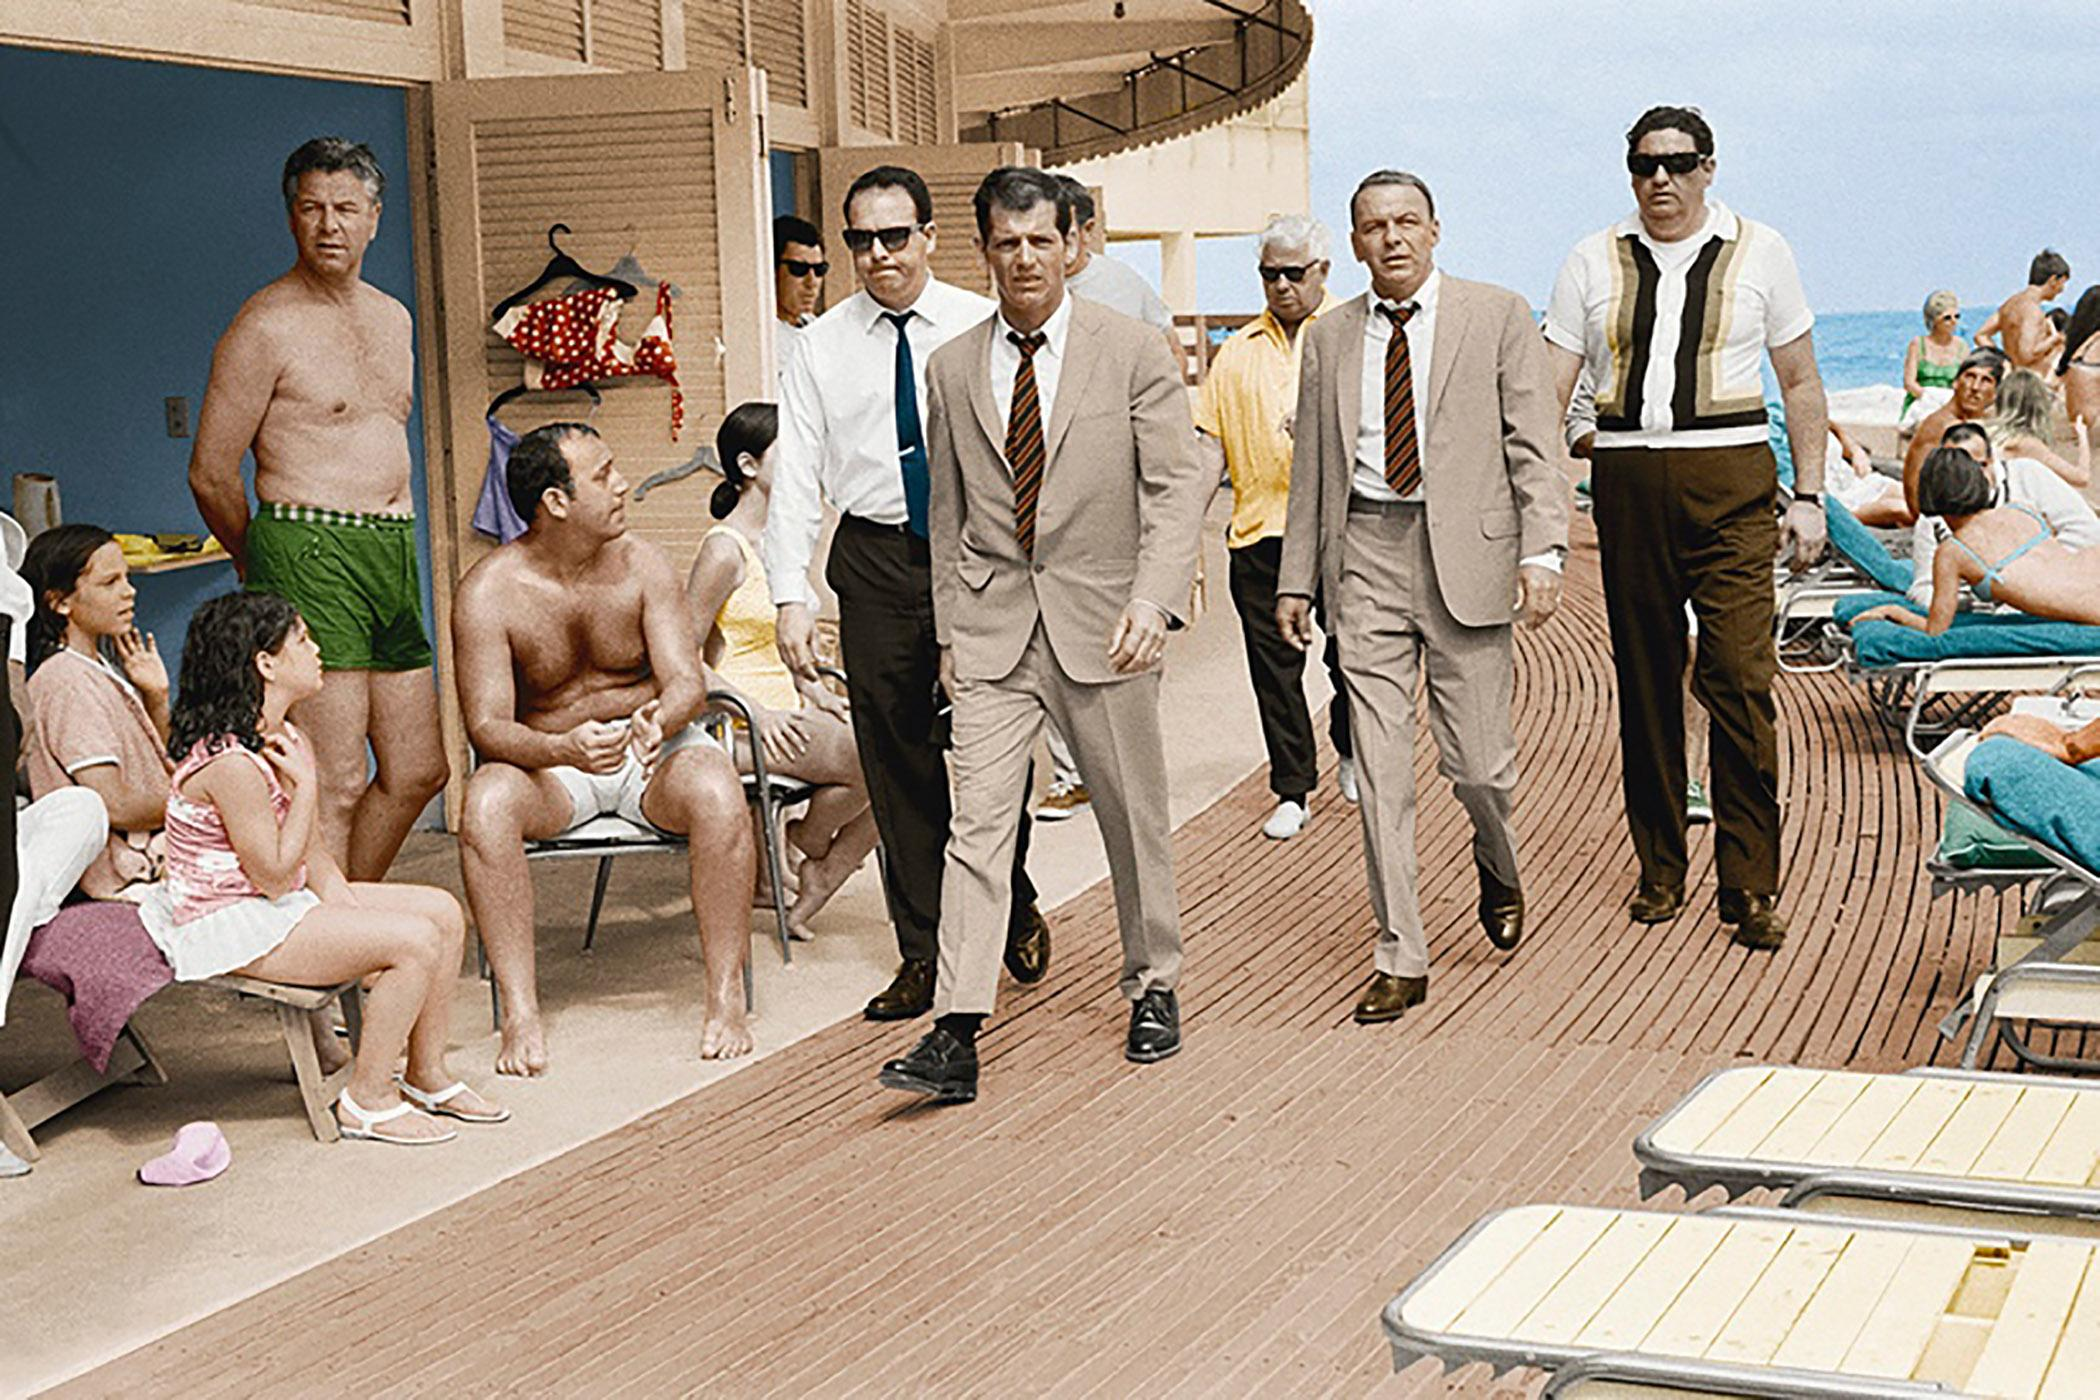 Frank Sinatra On The Boardwalk, Miami (Colorized) 1968 Handsigned